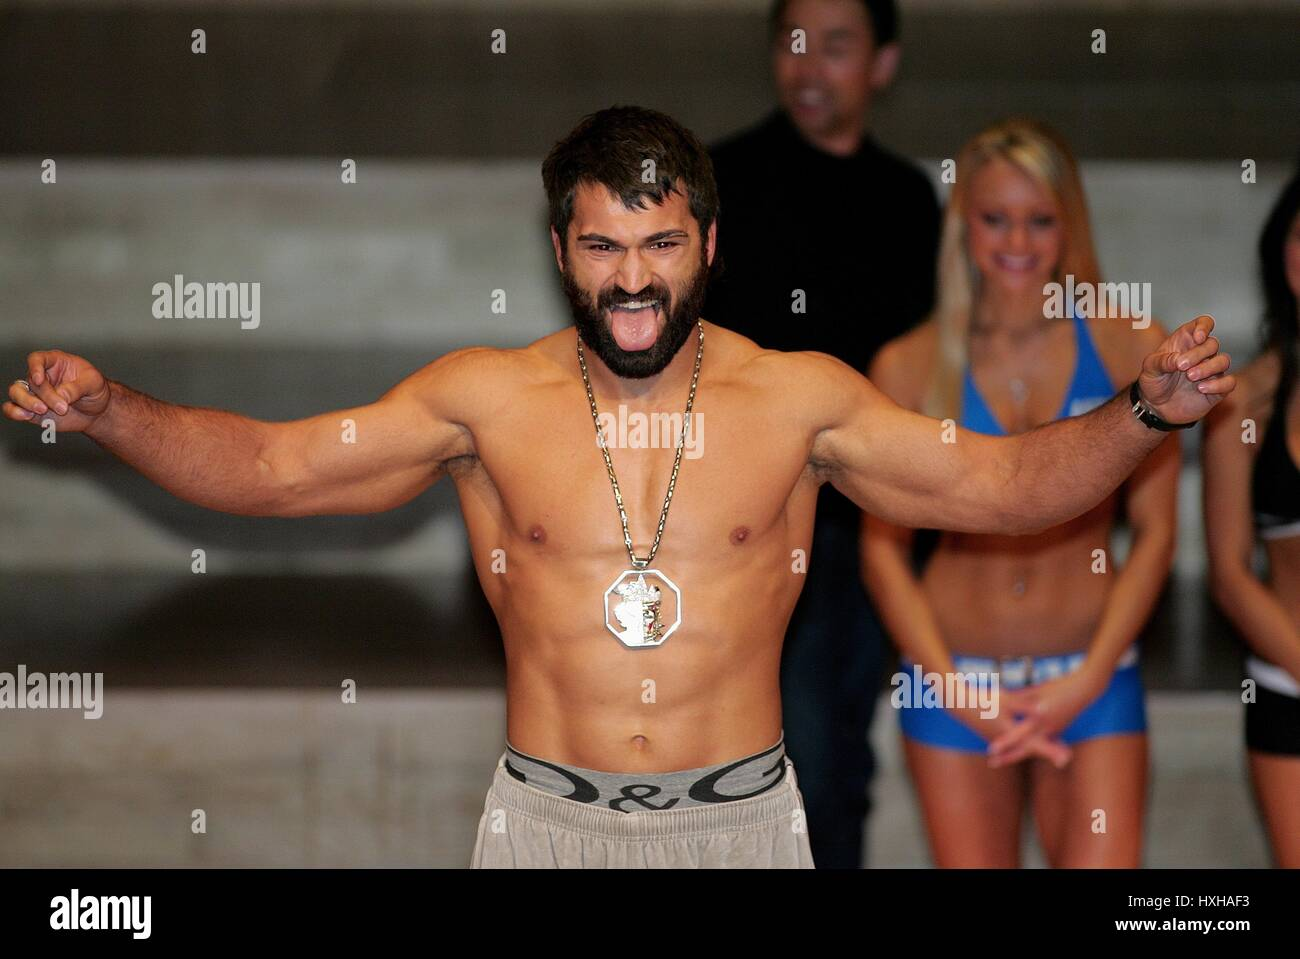 ARDREI ARLOVSKI UFC HEAVY WEIGHT FIGHTER MANCHESTER  ENGLAND 20 April 2007 - Stock Image